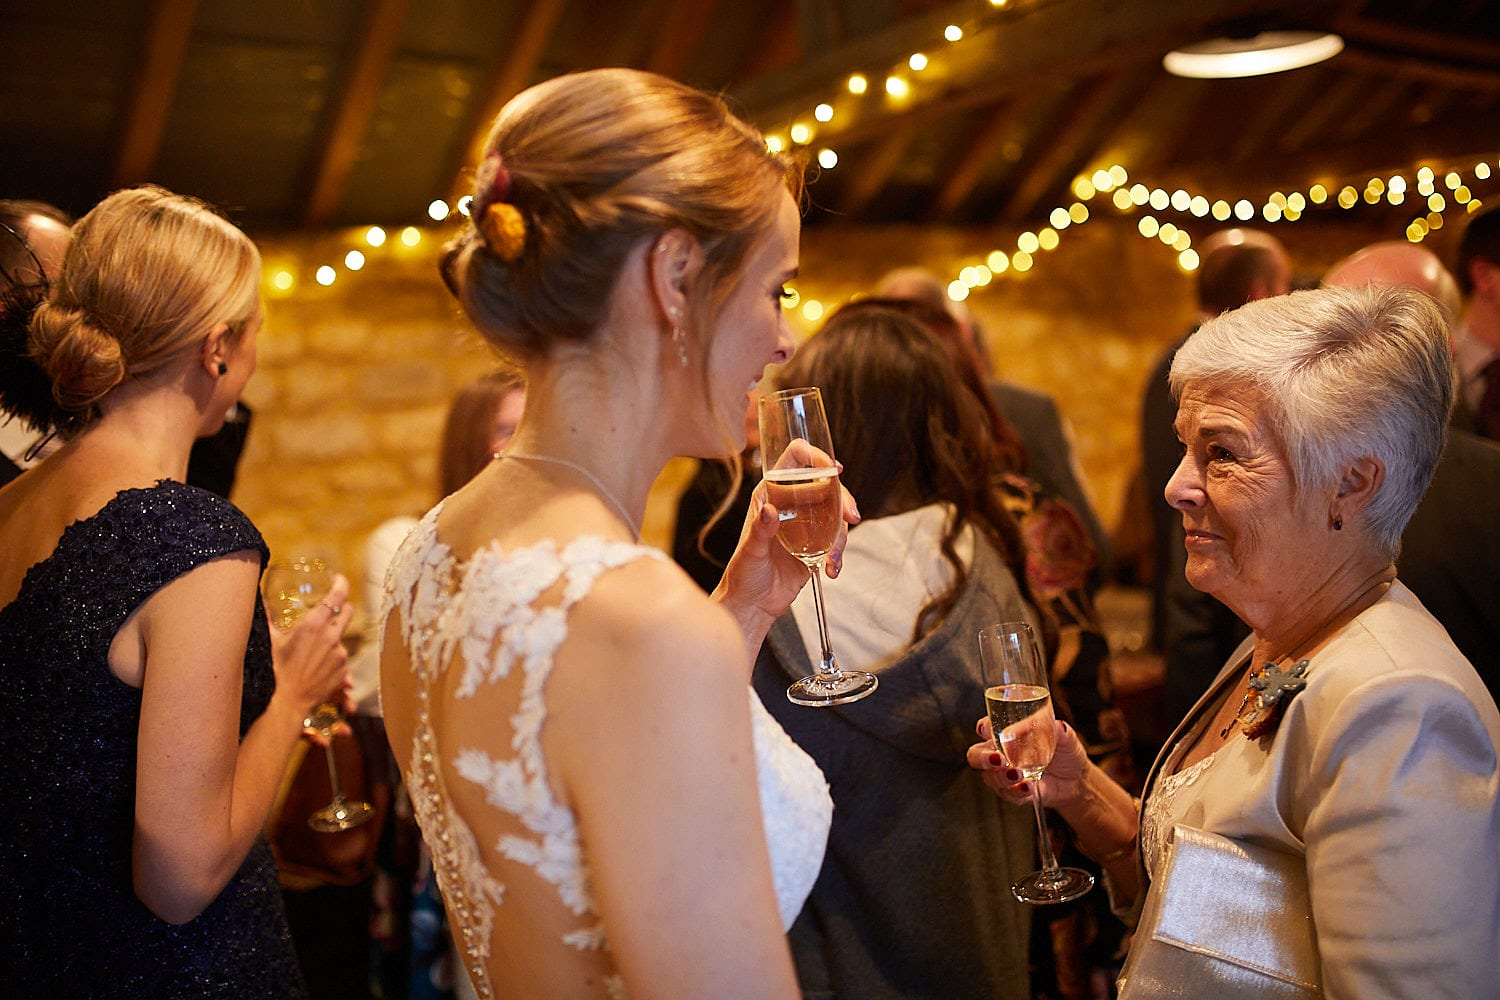 A bride chats with her mother who looks on proudly